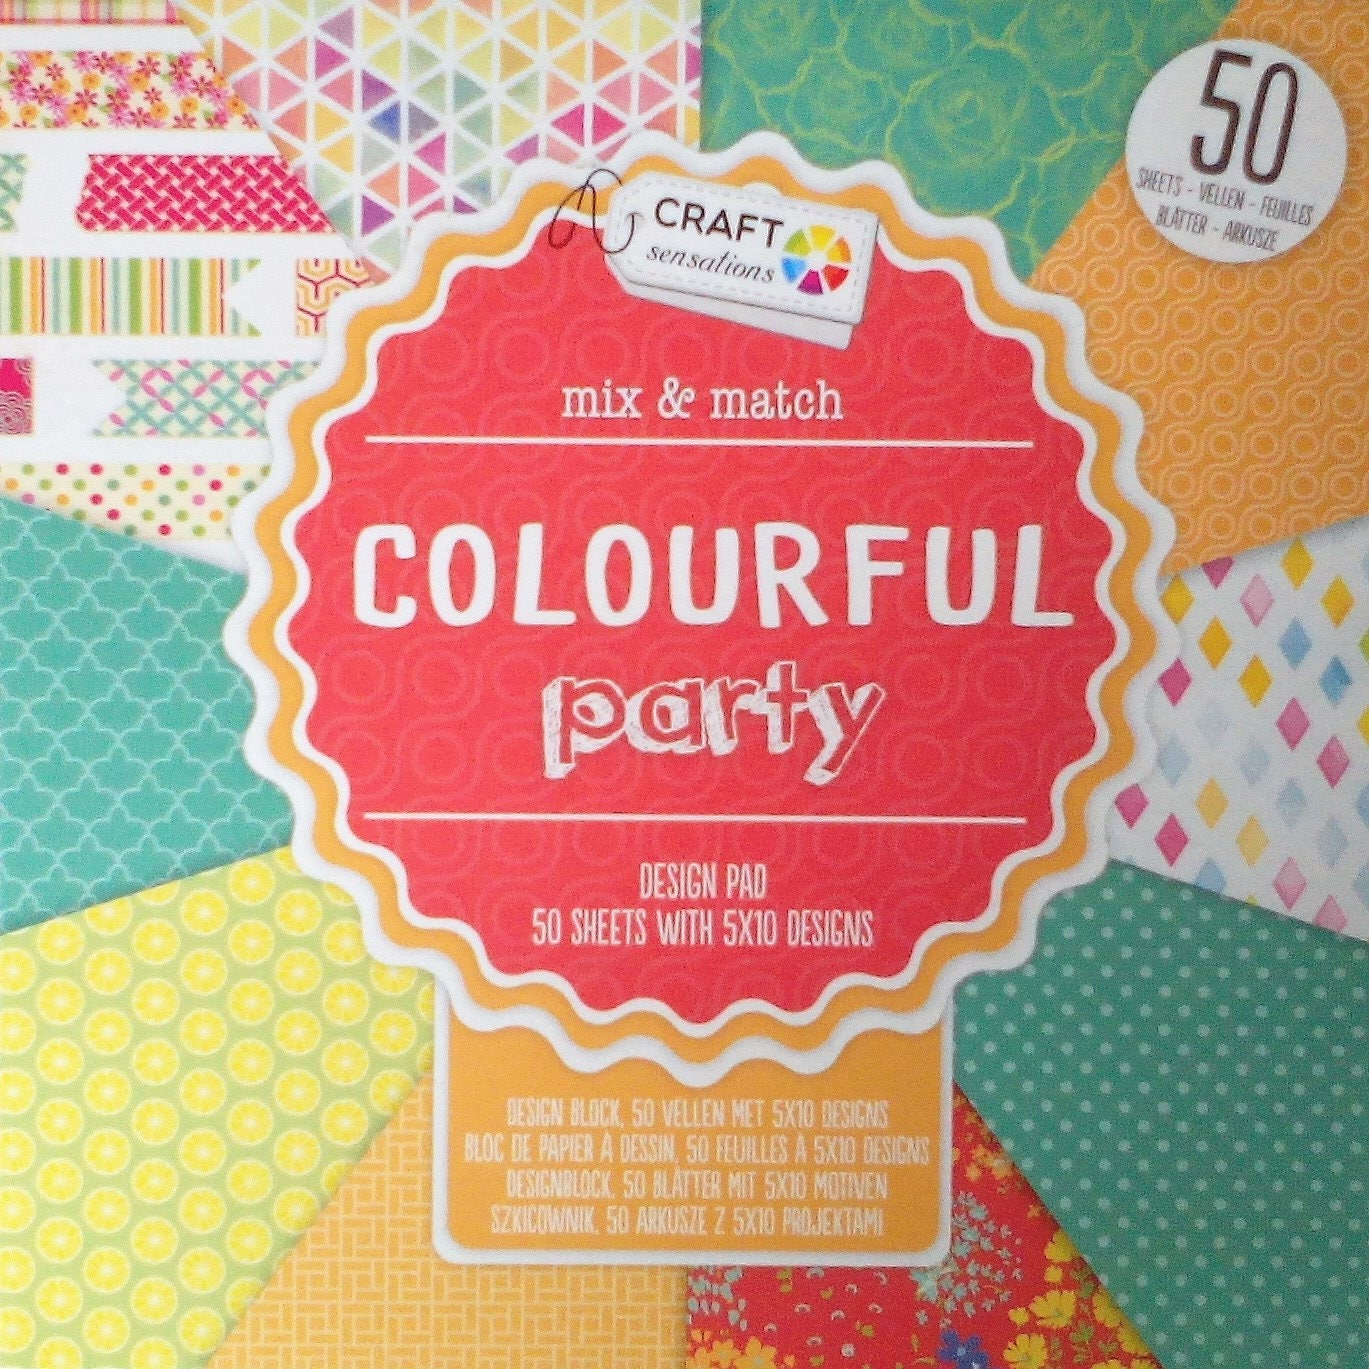 Block 50 scrapbooking sheets 15 X 15 Colorful Party | Etsy